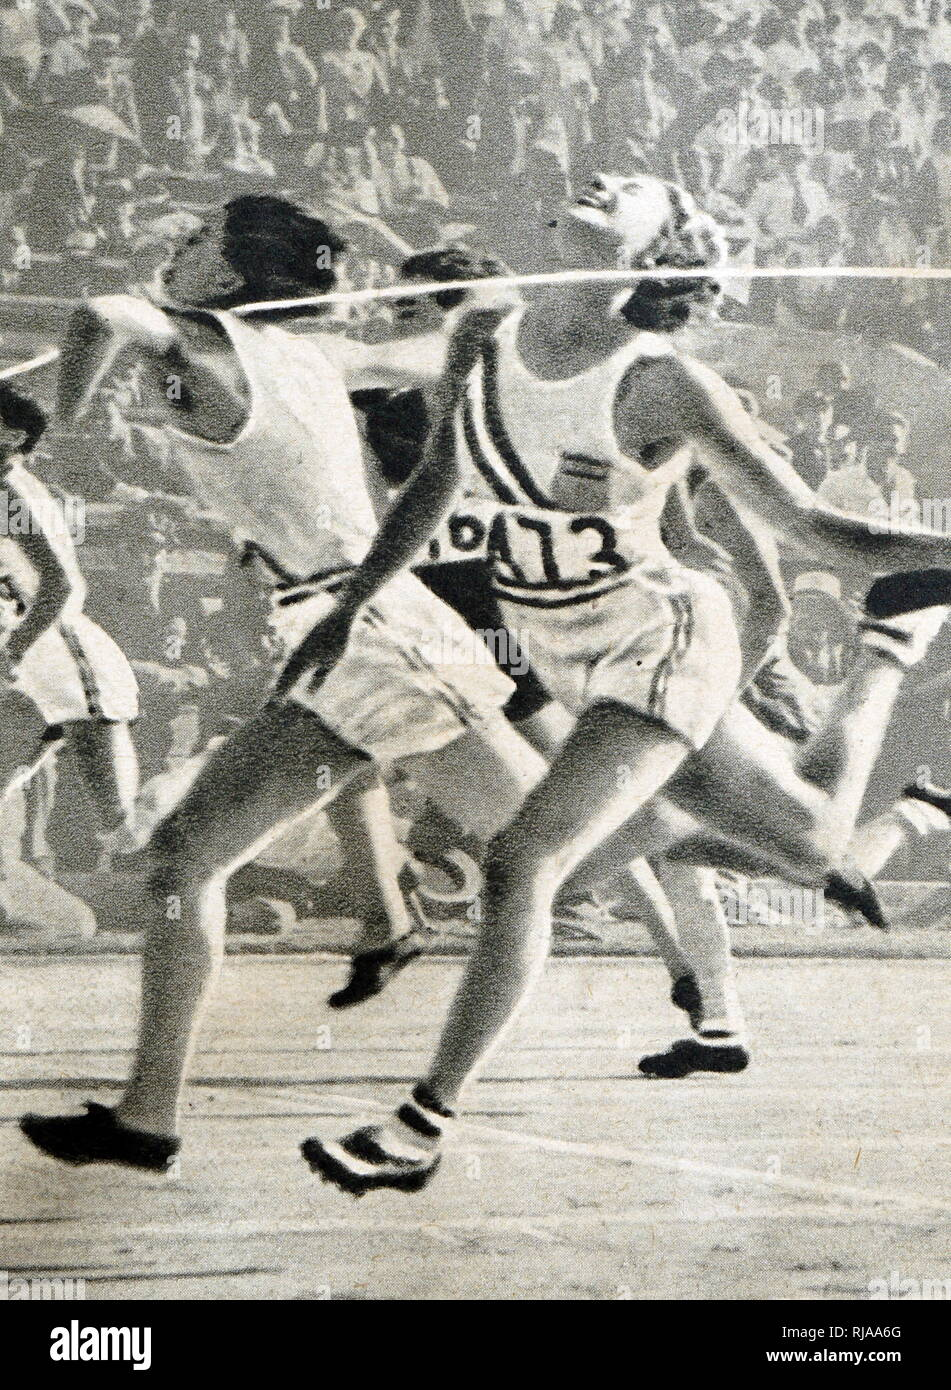 Photograph of Mildred Ella 'Babe' Didrikson Zaharias (1911 - 1956)  winning the 80m Hurdles at the 1932 Olympic games. Babe gained world fame in track and field and All-American status in basketball. - Stock Image